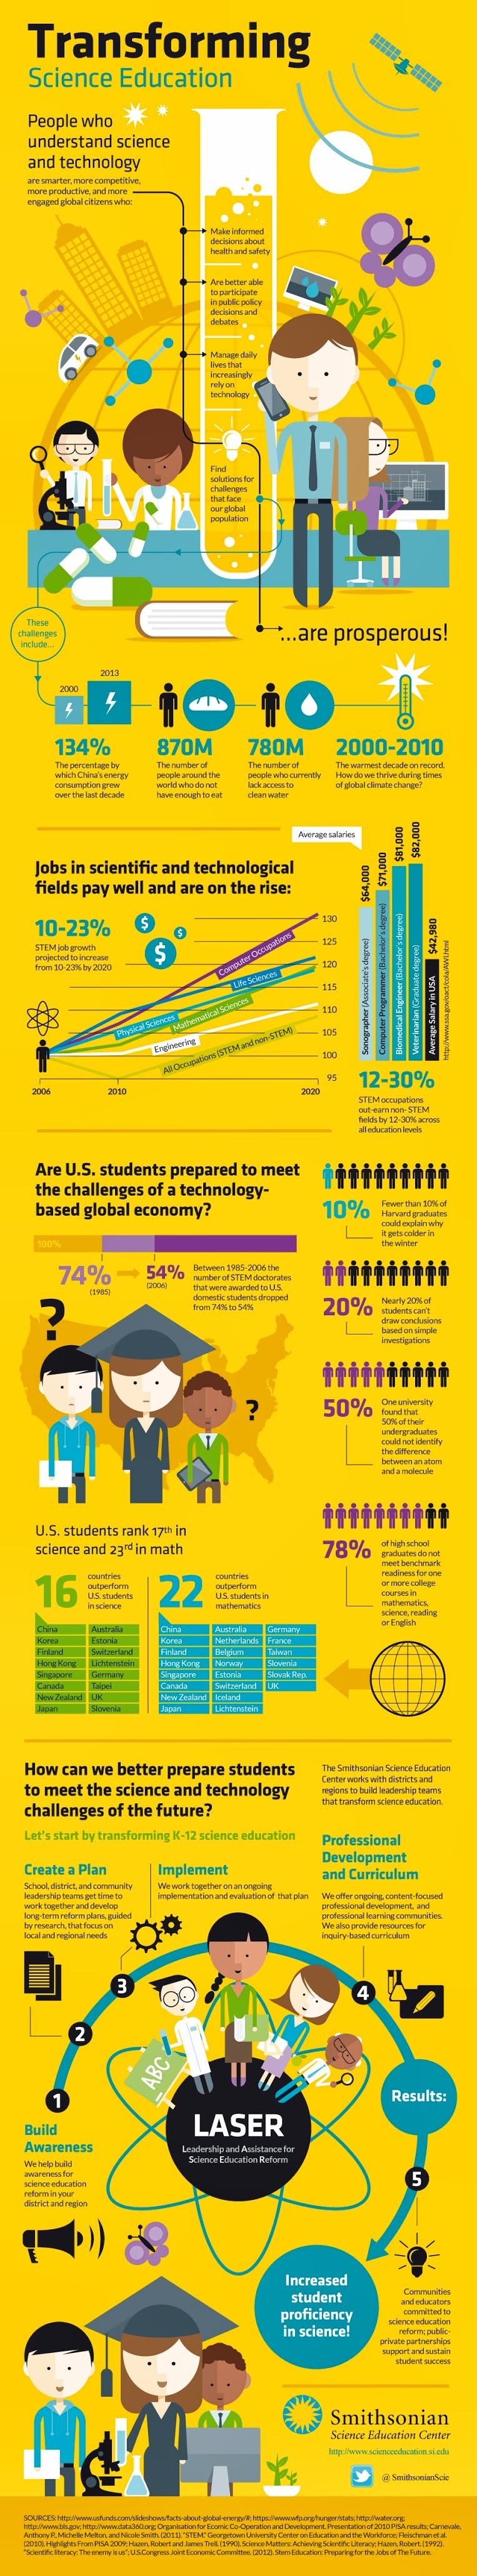 Transforming Science Education , infographic by Boris Benko